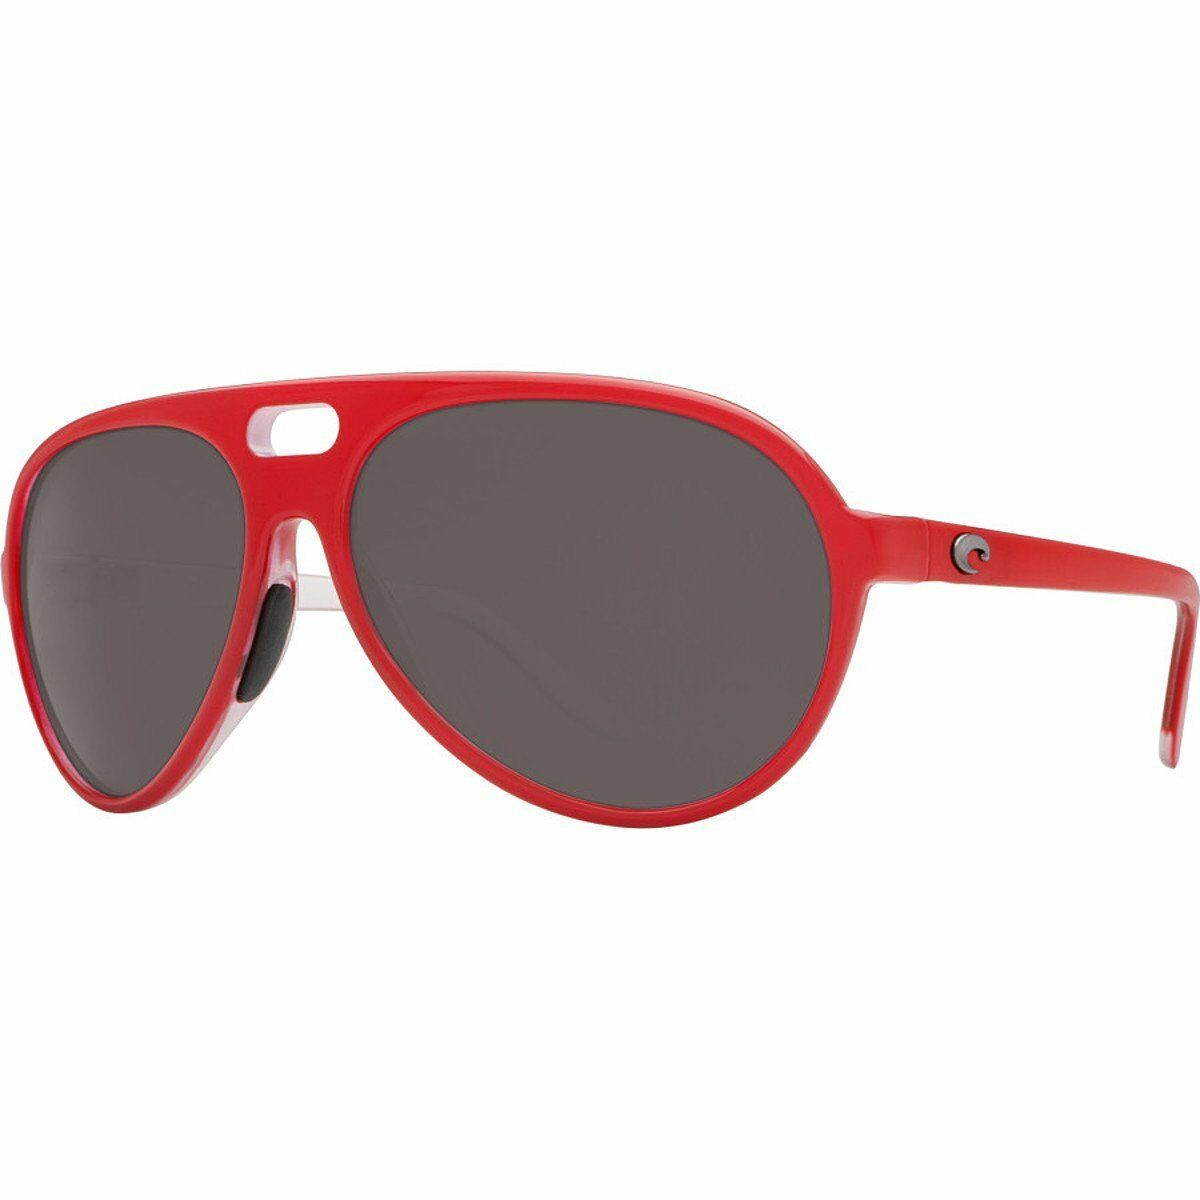 Costa Del Mar Grand Catalina Polarized Sunglasses Red Gray Lens 580p ...